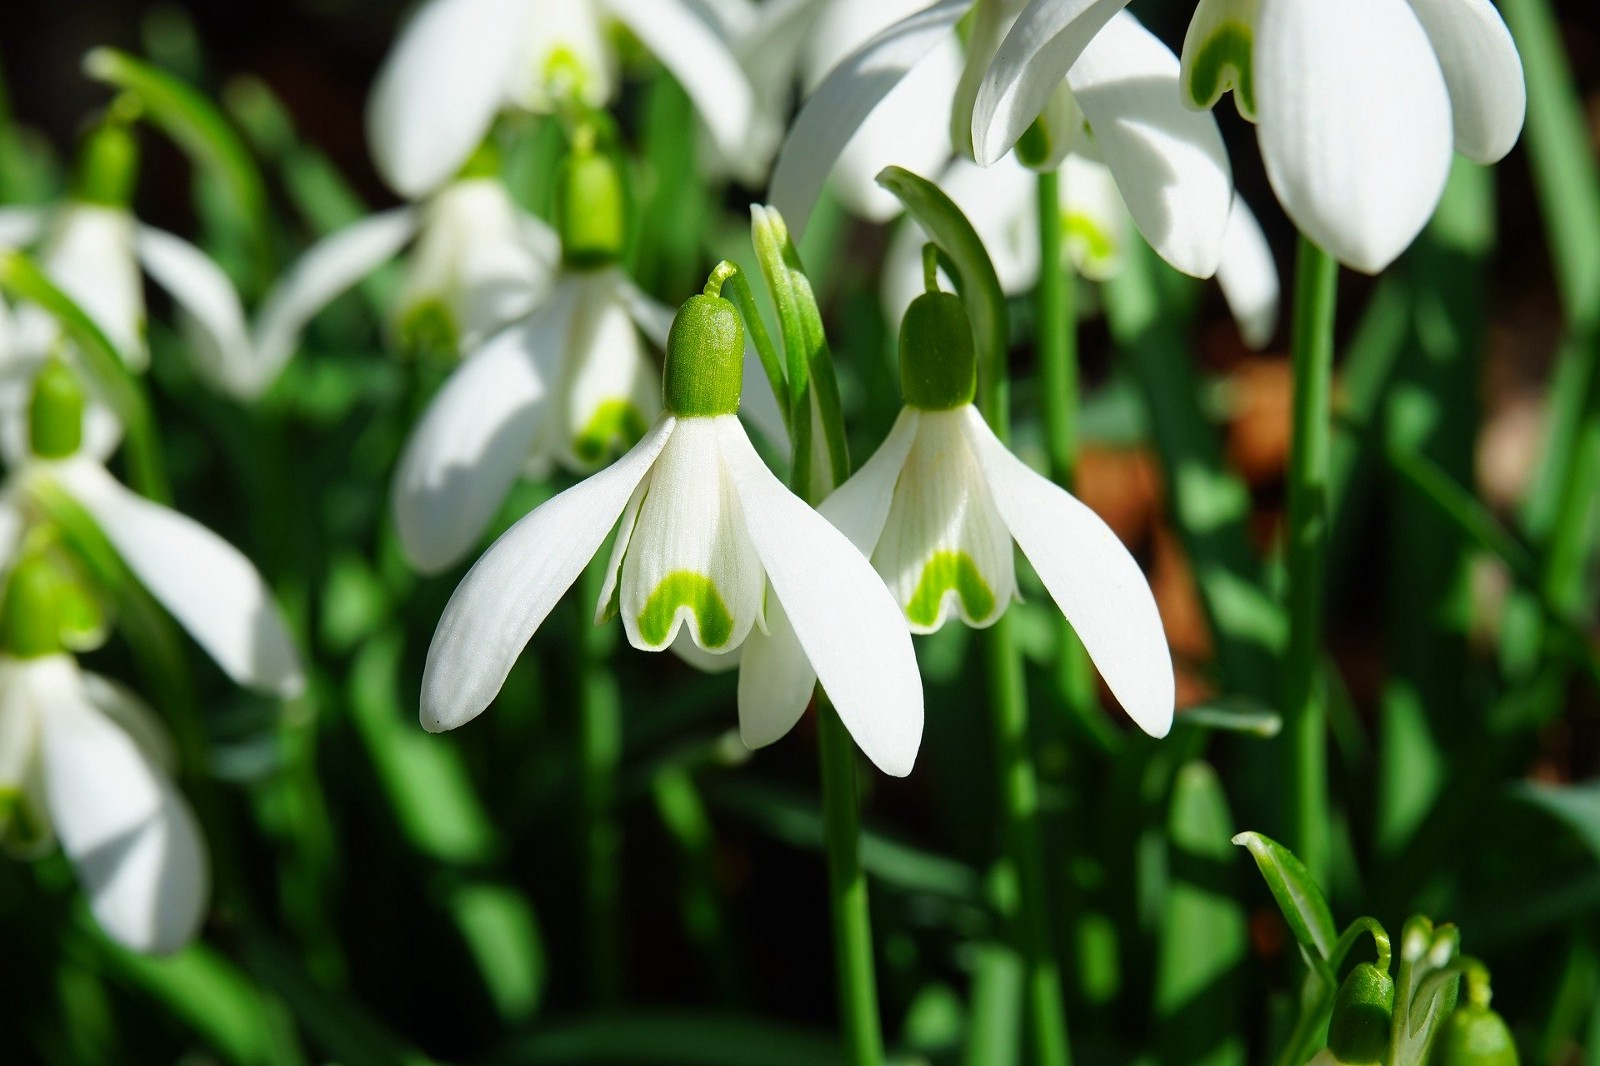 Snowdrops symbolise hope and anticipation of Summer